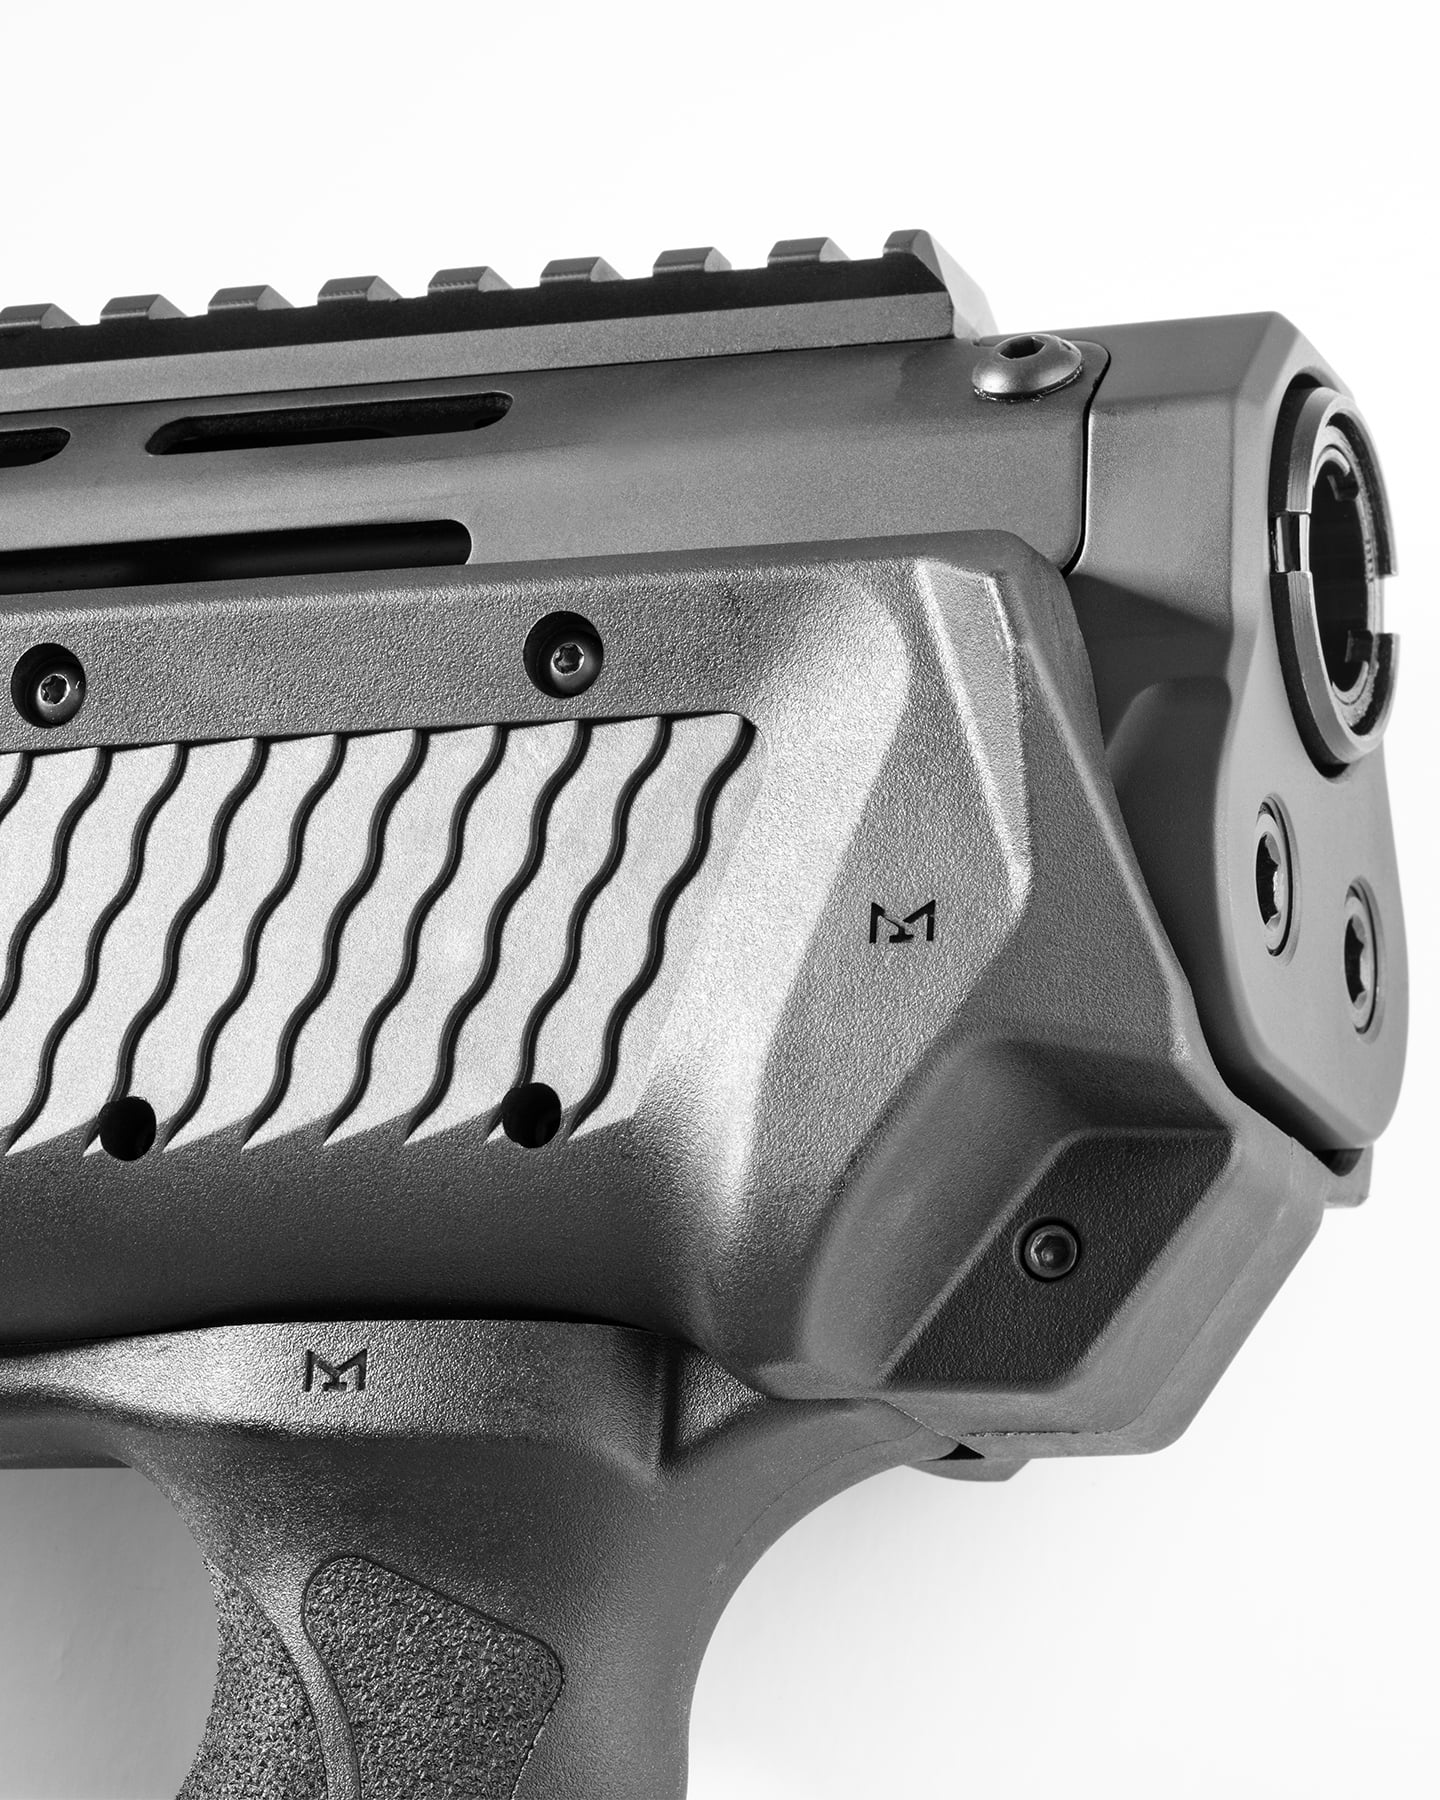 smith and wesson mp 12 shotgun 12 gauge bullpup home defense